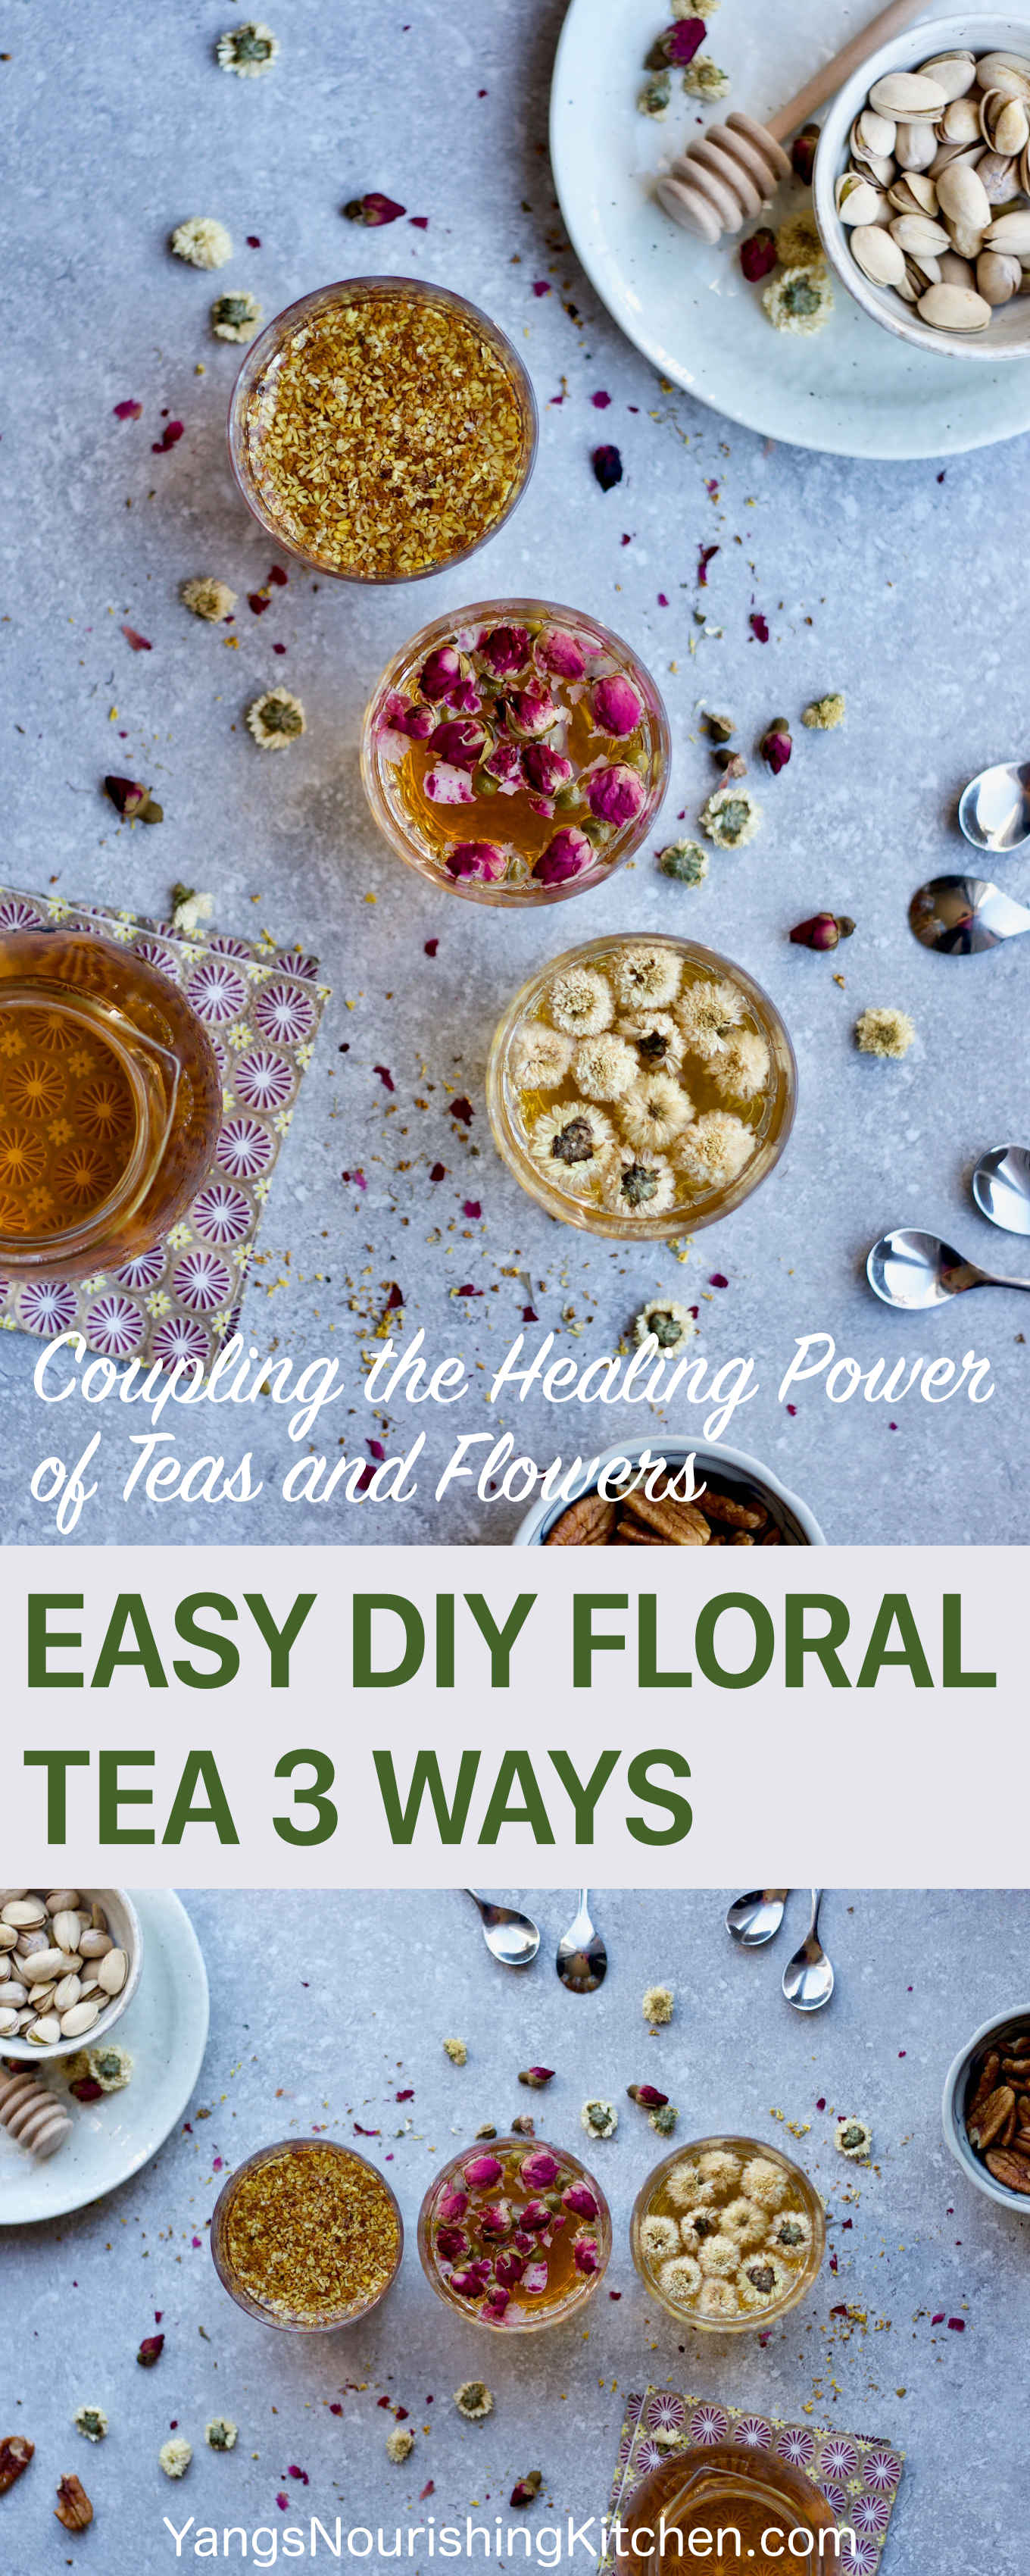 Easy DIY Floral Tea 3 Ways: Coupling the Healing Power of Teas and Flowers